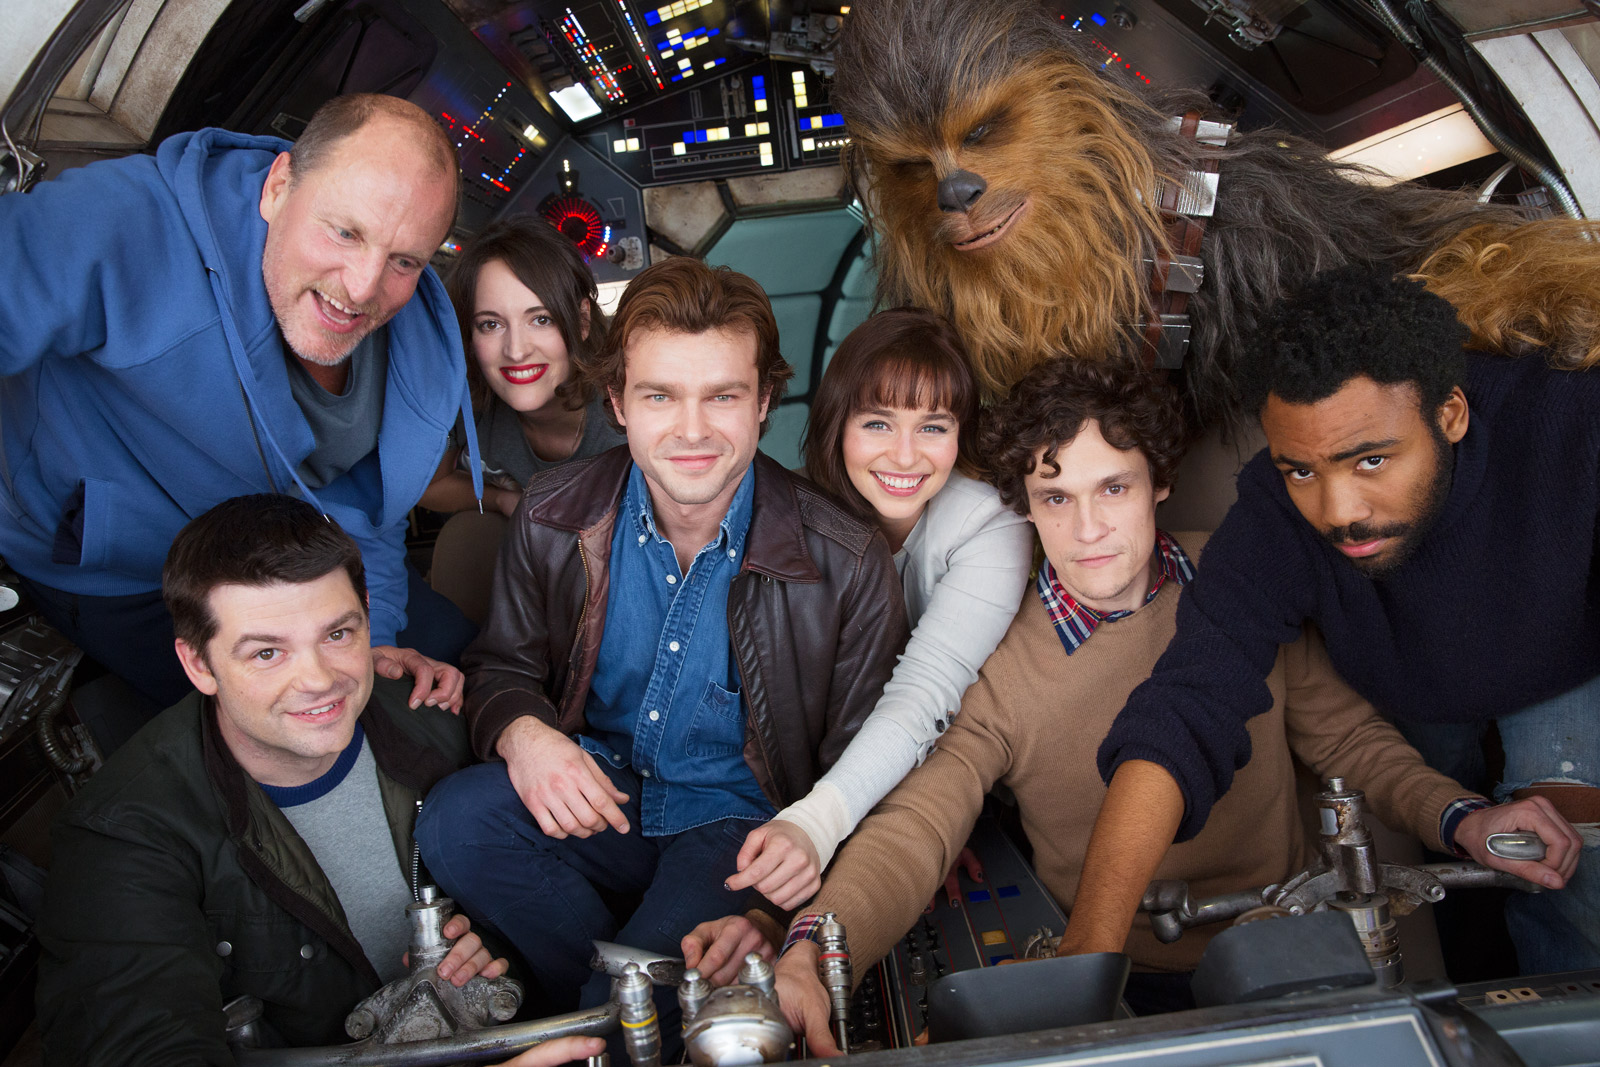 Han Solo Star Wars Story (spinoff movie) begins principal photography